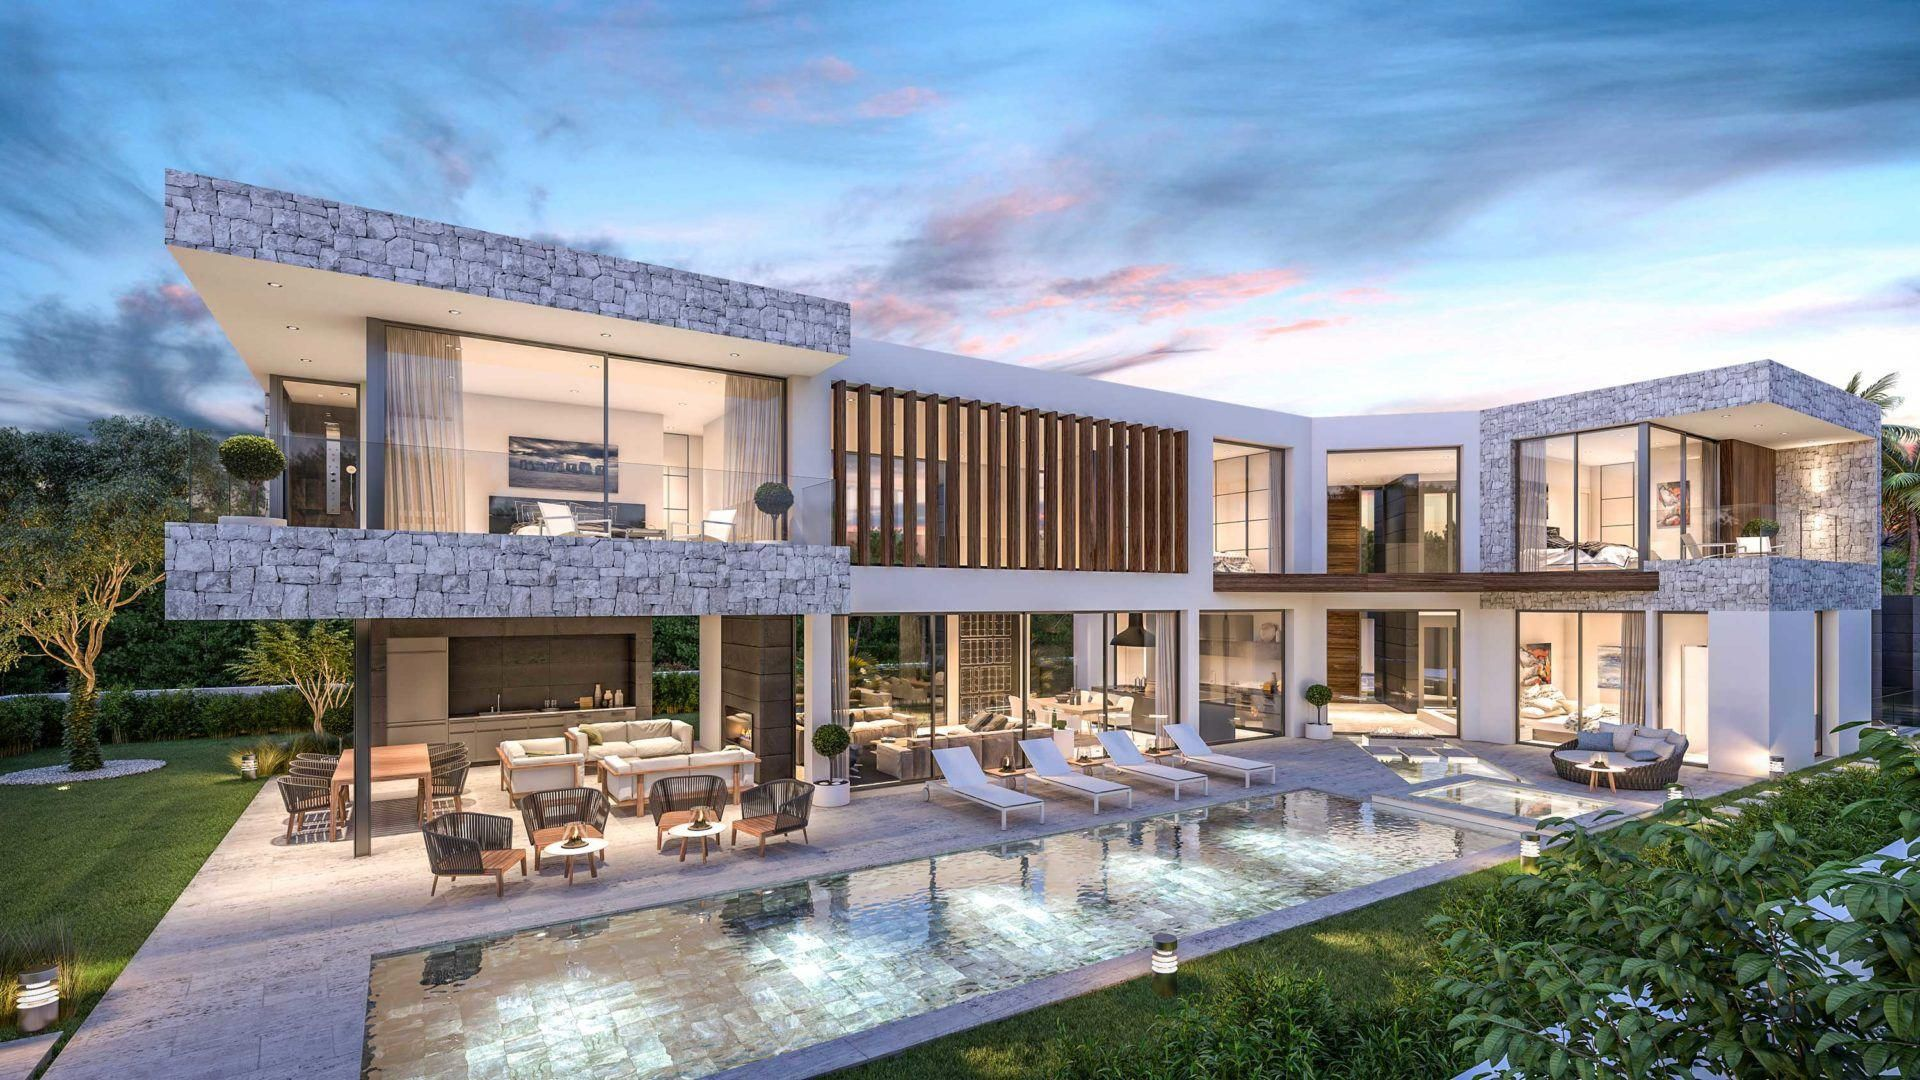 Construction And Design Of Luxury Villa For Sale In The Area Of Marbella And The Costa Del Sol By The Builder And Architects In M Modern Mansion Mansions Villa